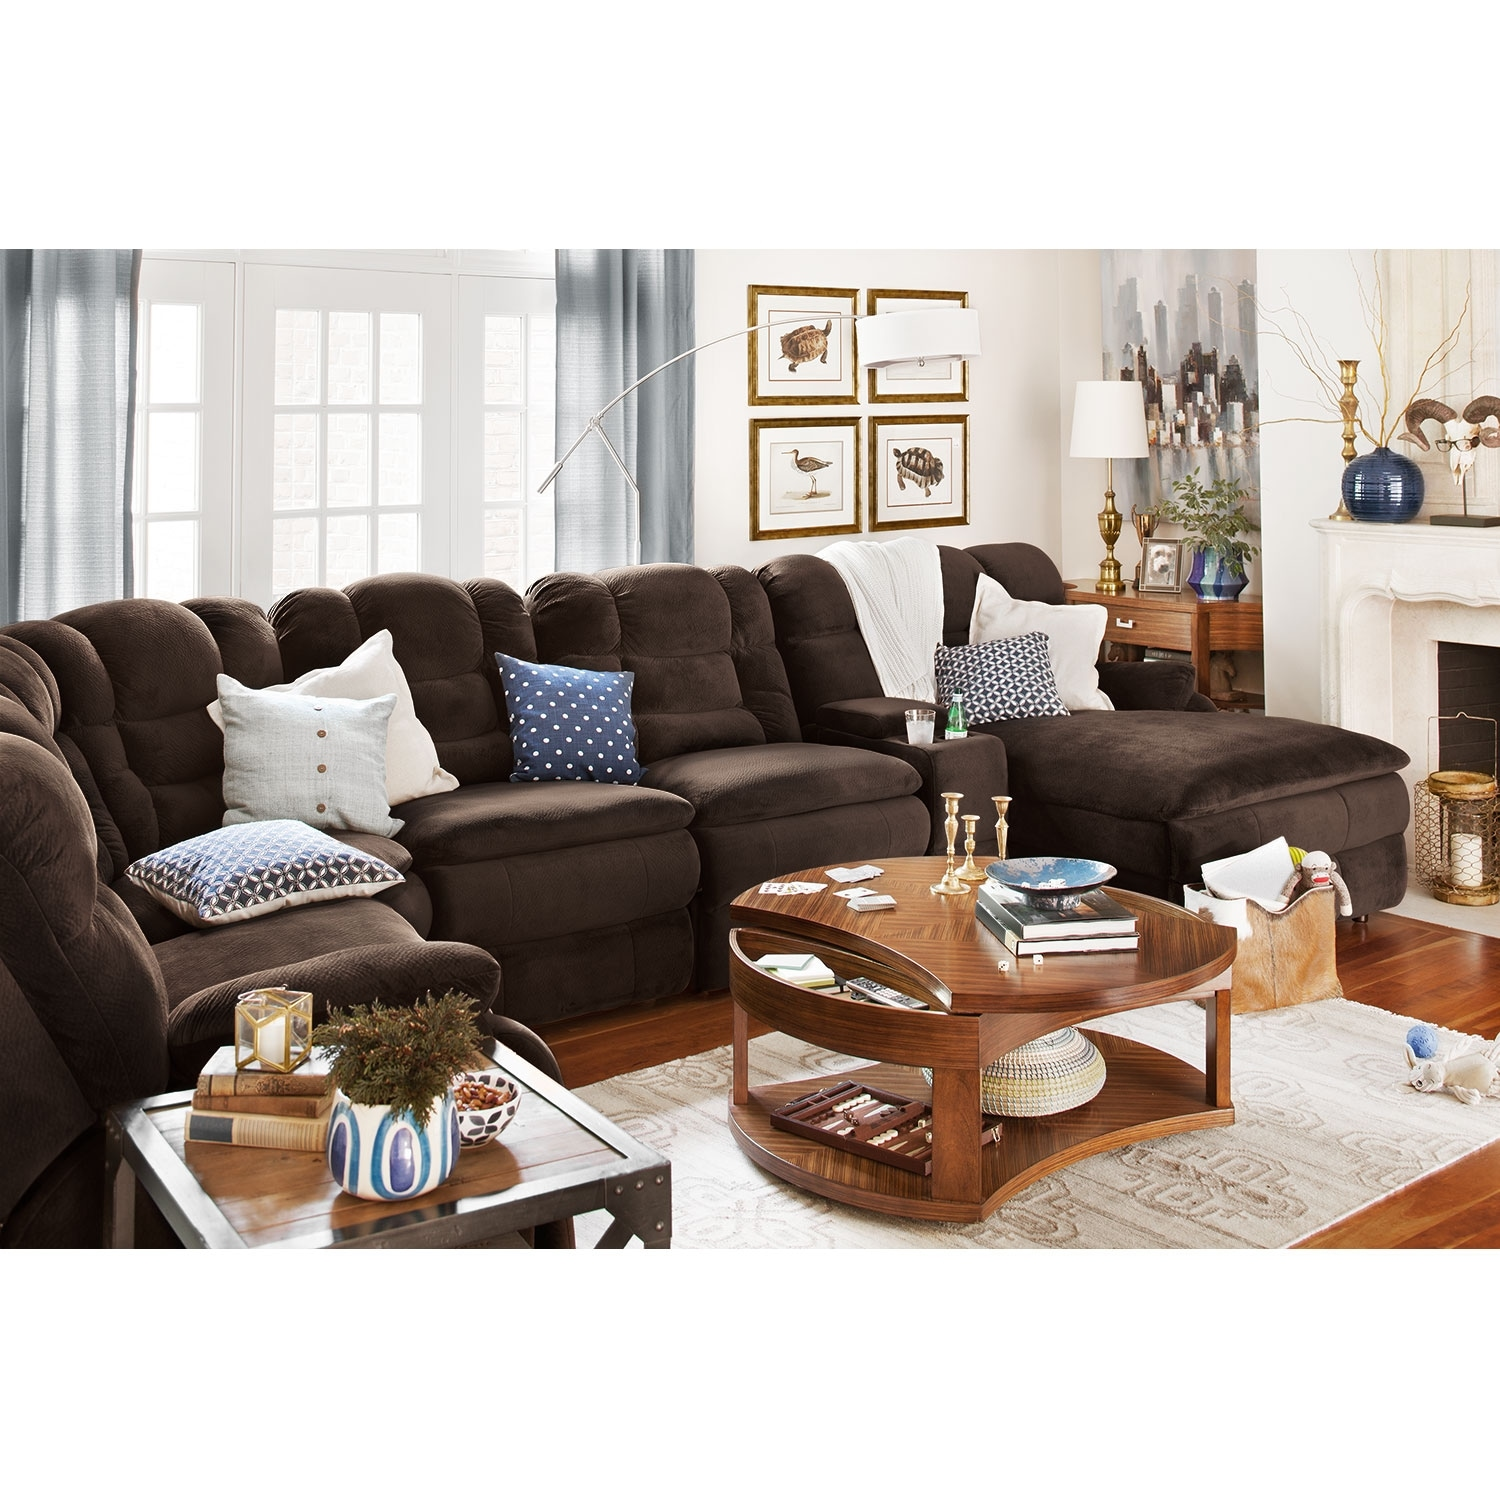 Big softie 6 pc power reclining sectional american for 6 pc sectional living room